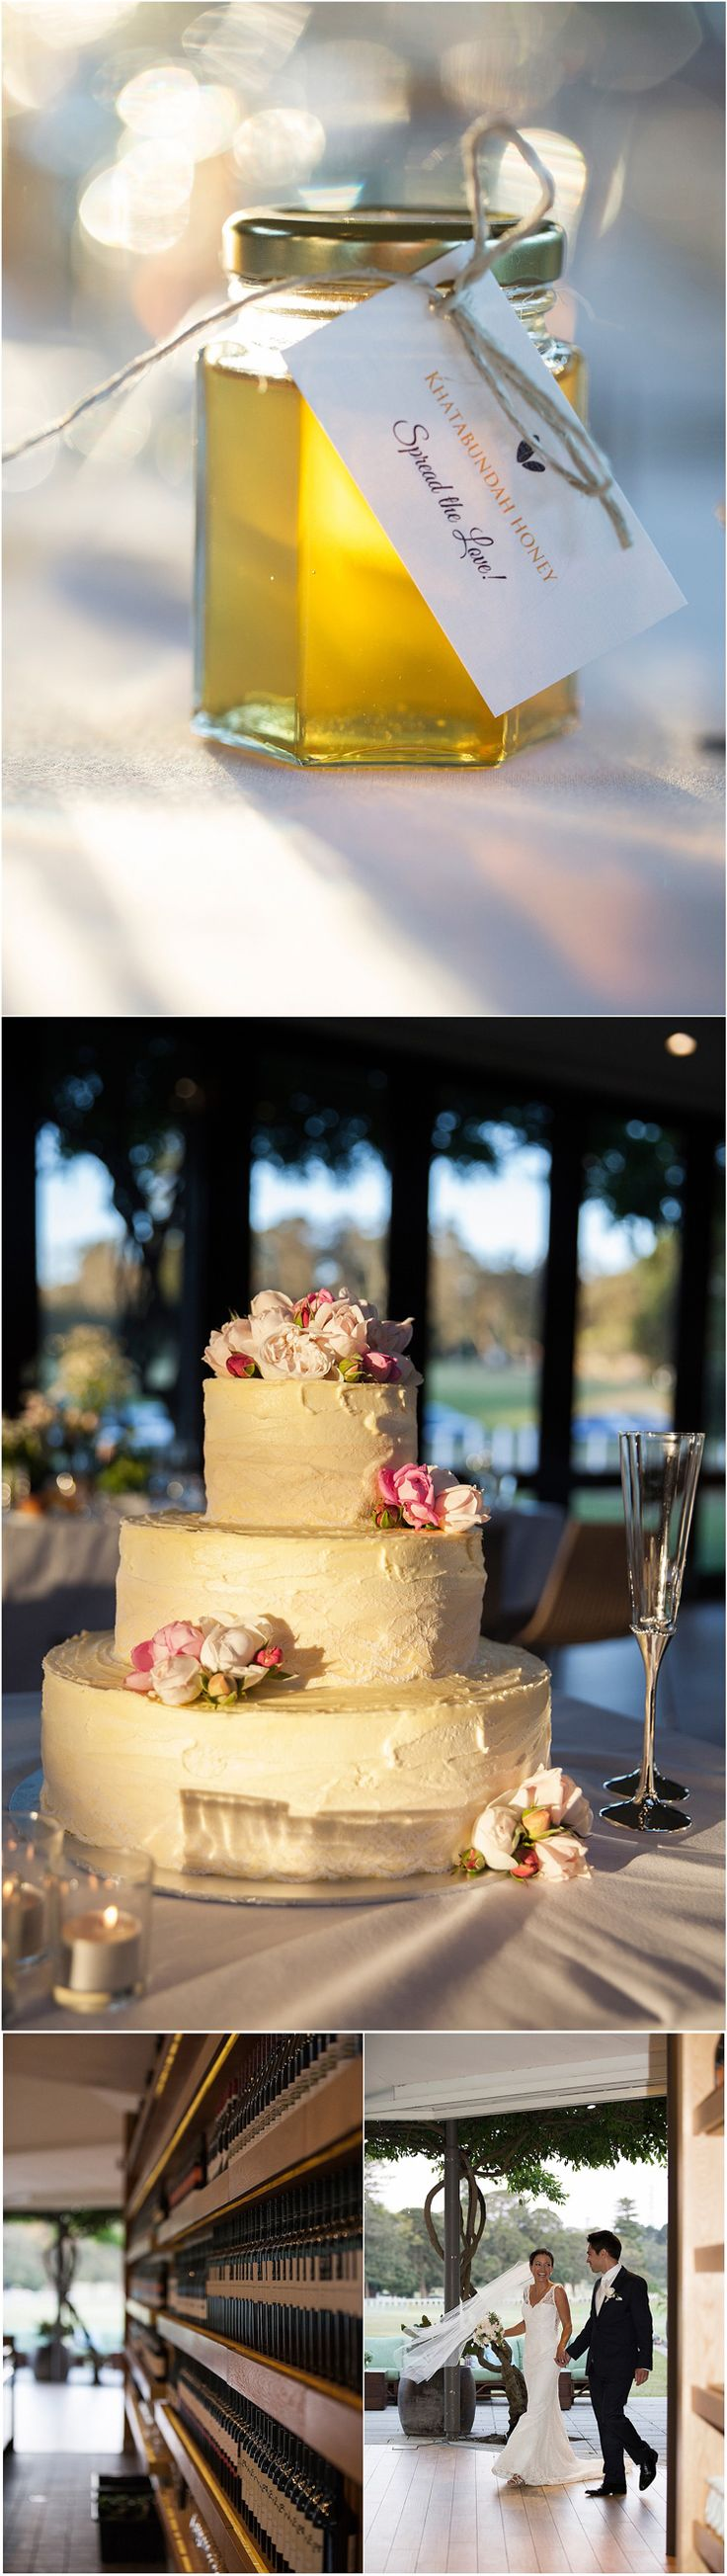 Sometimes its the simple touches | Centennial Parklands Dining.   Photography by April Mac Photography.  #weddinginspo #cakeinspo #sydneybrides